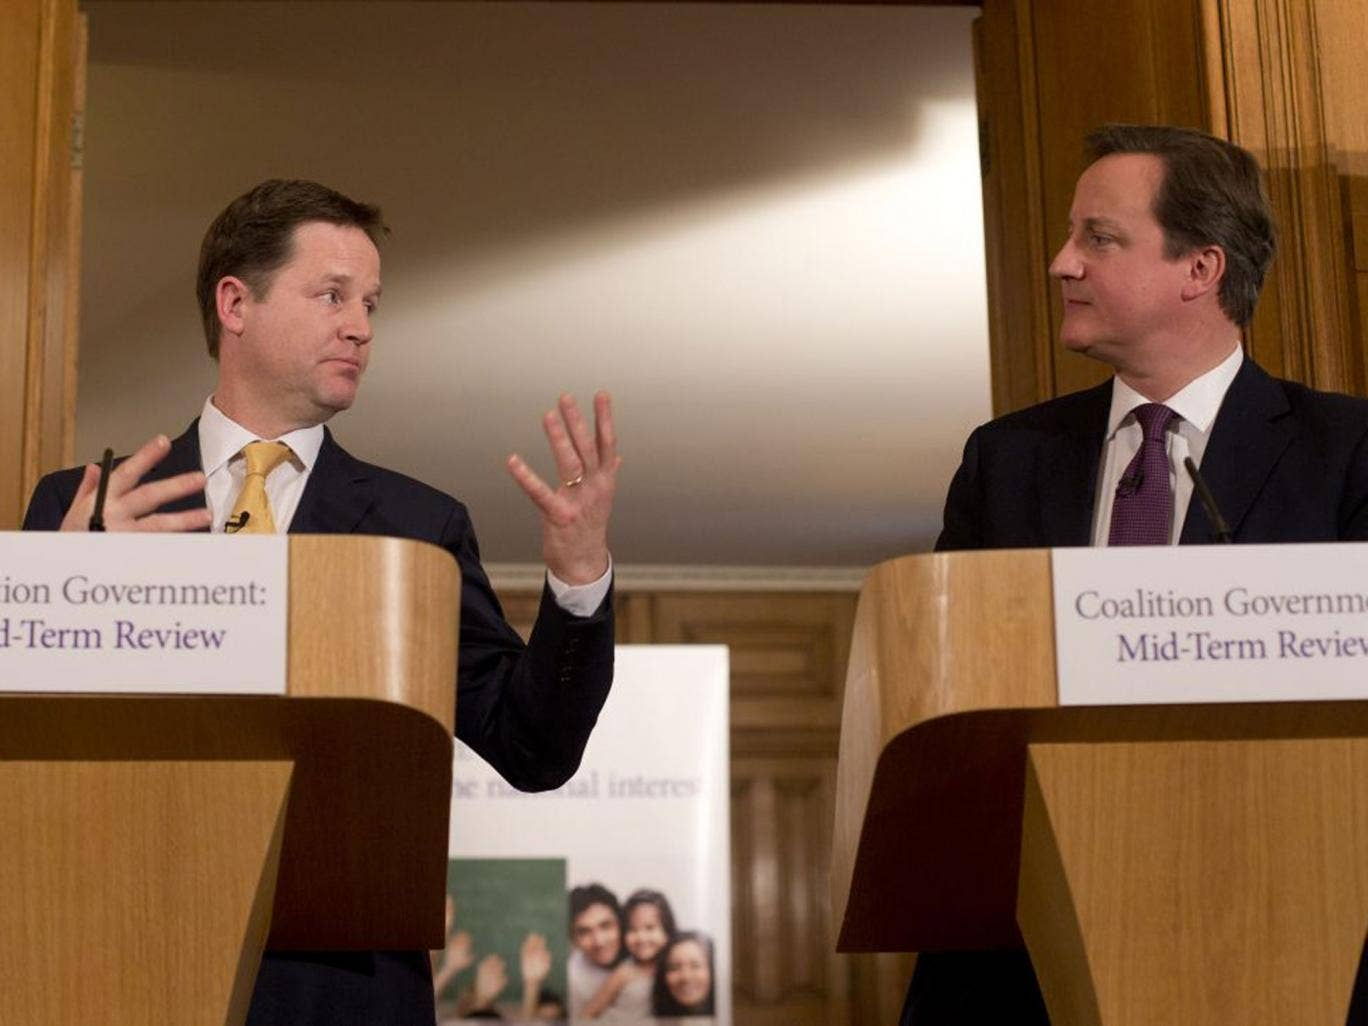 David Cameron and Nick Clegg during their joint press conference in 10 Downing Street yesterday